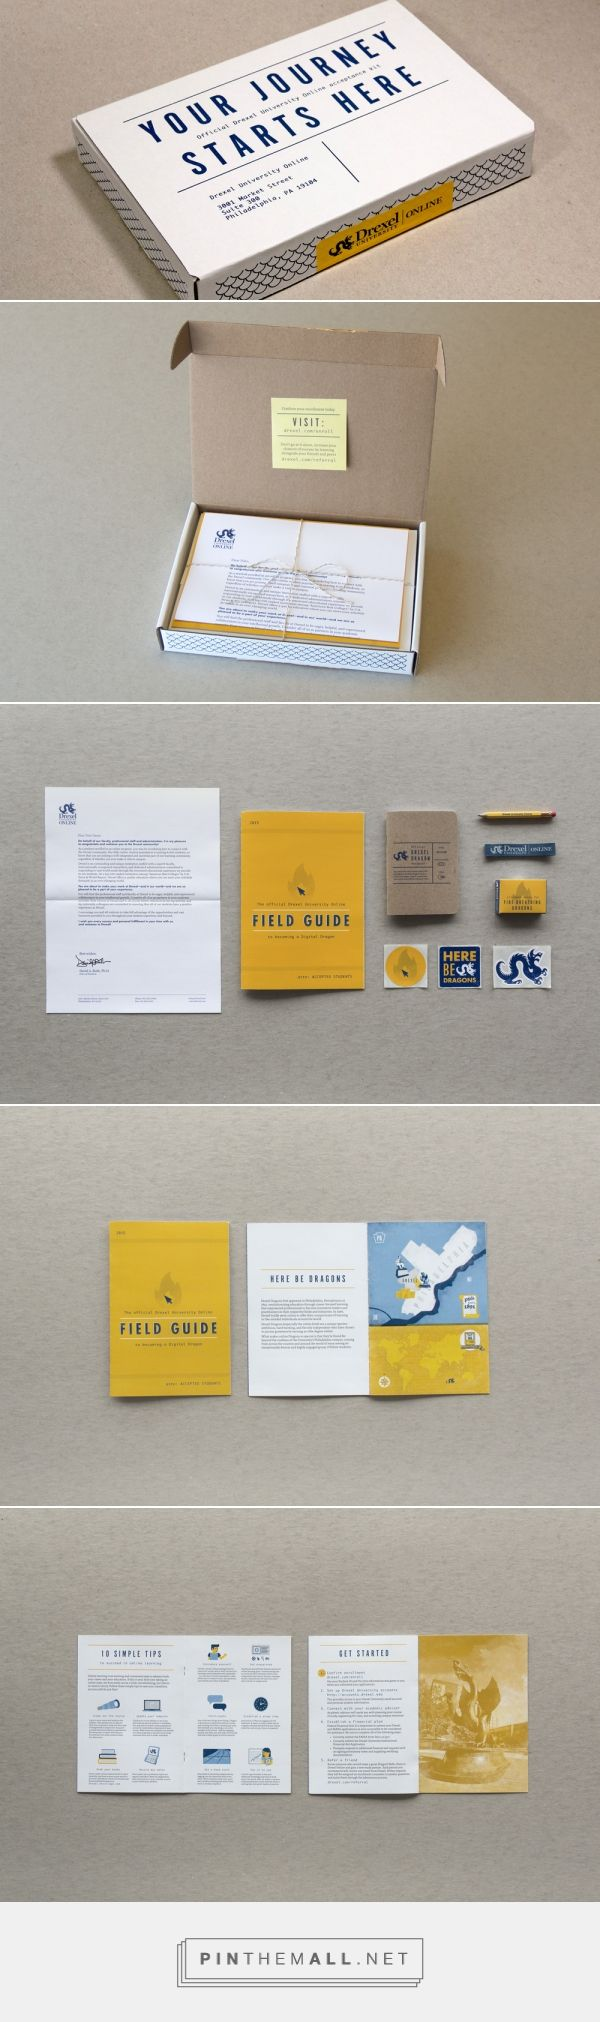 Drexel University Online Accepted Students Kit — The Dieline - Branding & Packaging Design - created via https://pinthemall.net